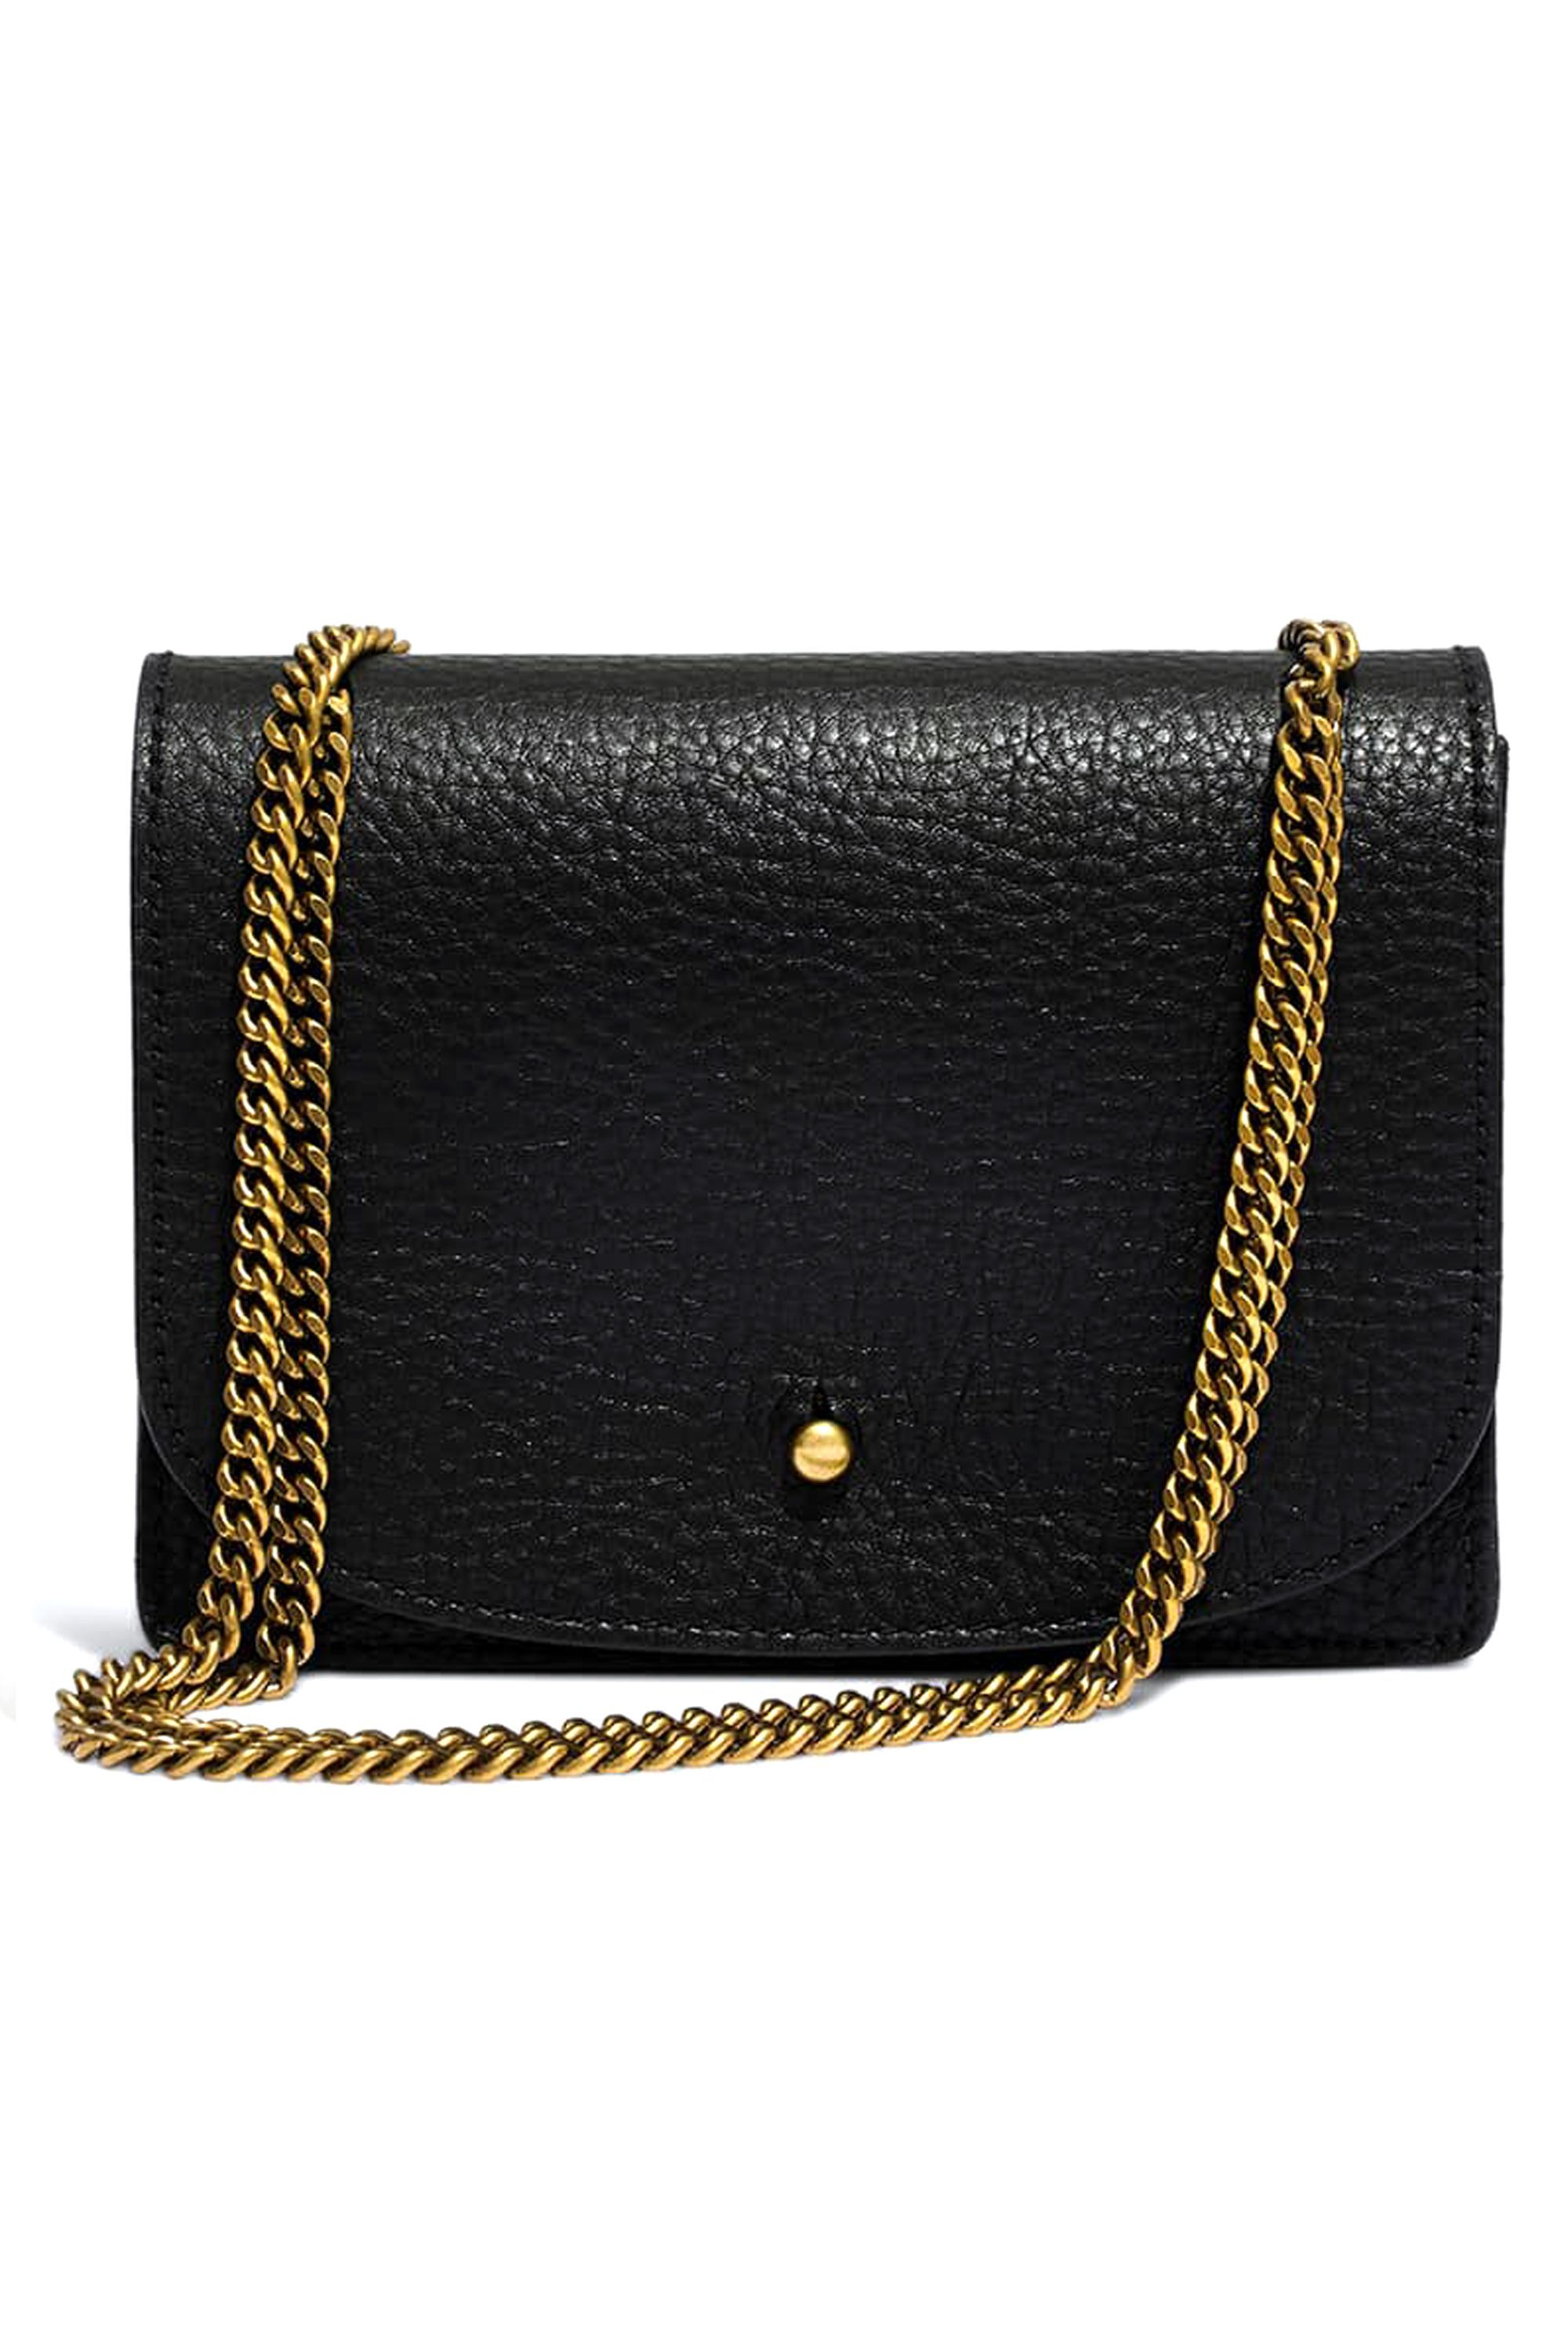 Myathle 10MM Width Iron Flat Chain Strap Handbags Replacement Chains for Wallet Clutch Satchel Tote Bag Length 47 Purse Chain Shoulder Crossbody Bags Gold Plated Hardware Chain Silver